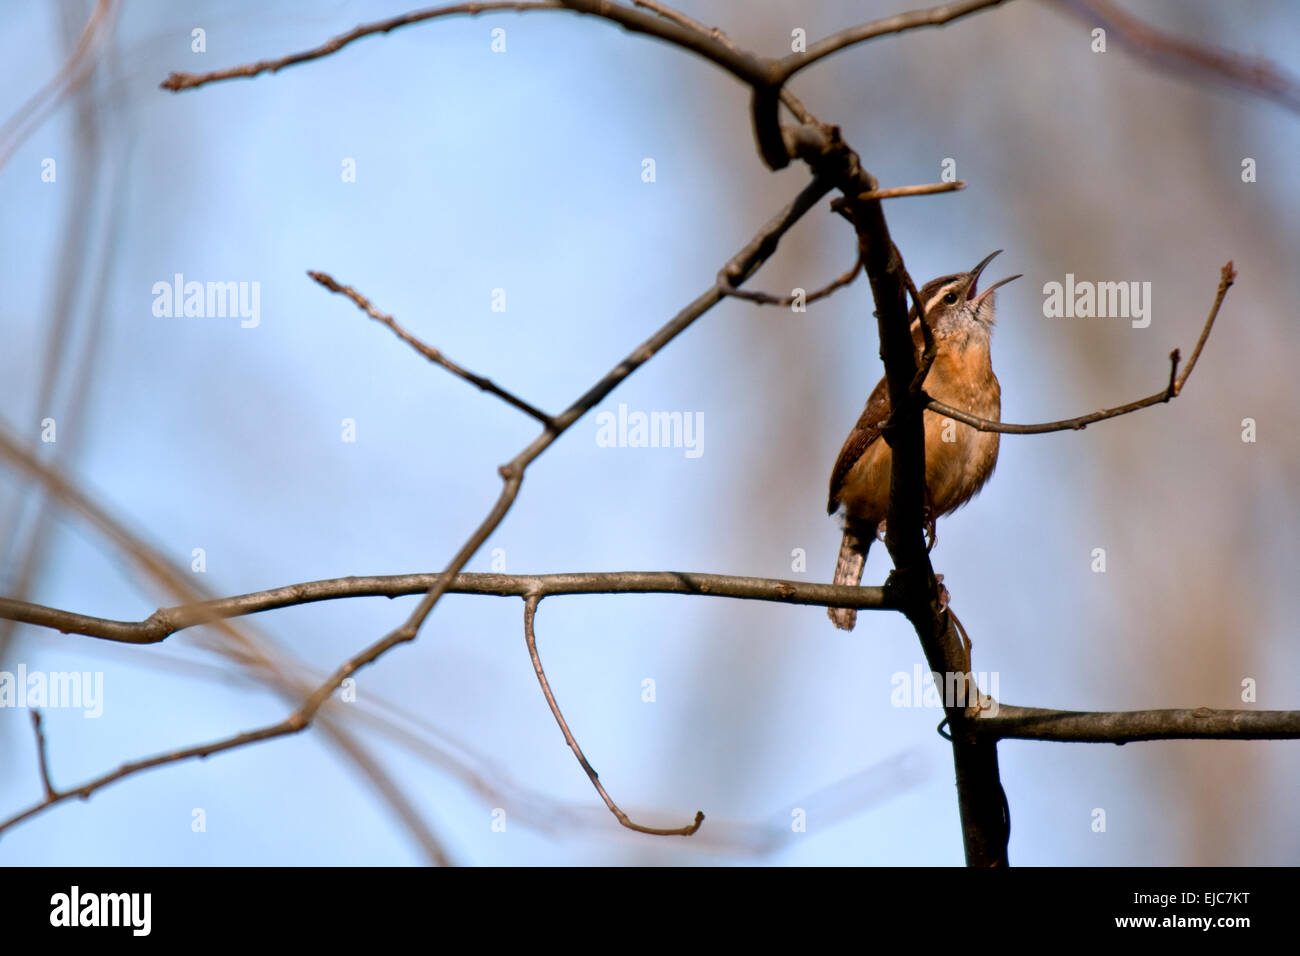 Warbler singing in the warm early morning sunlight. - Stock Image